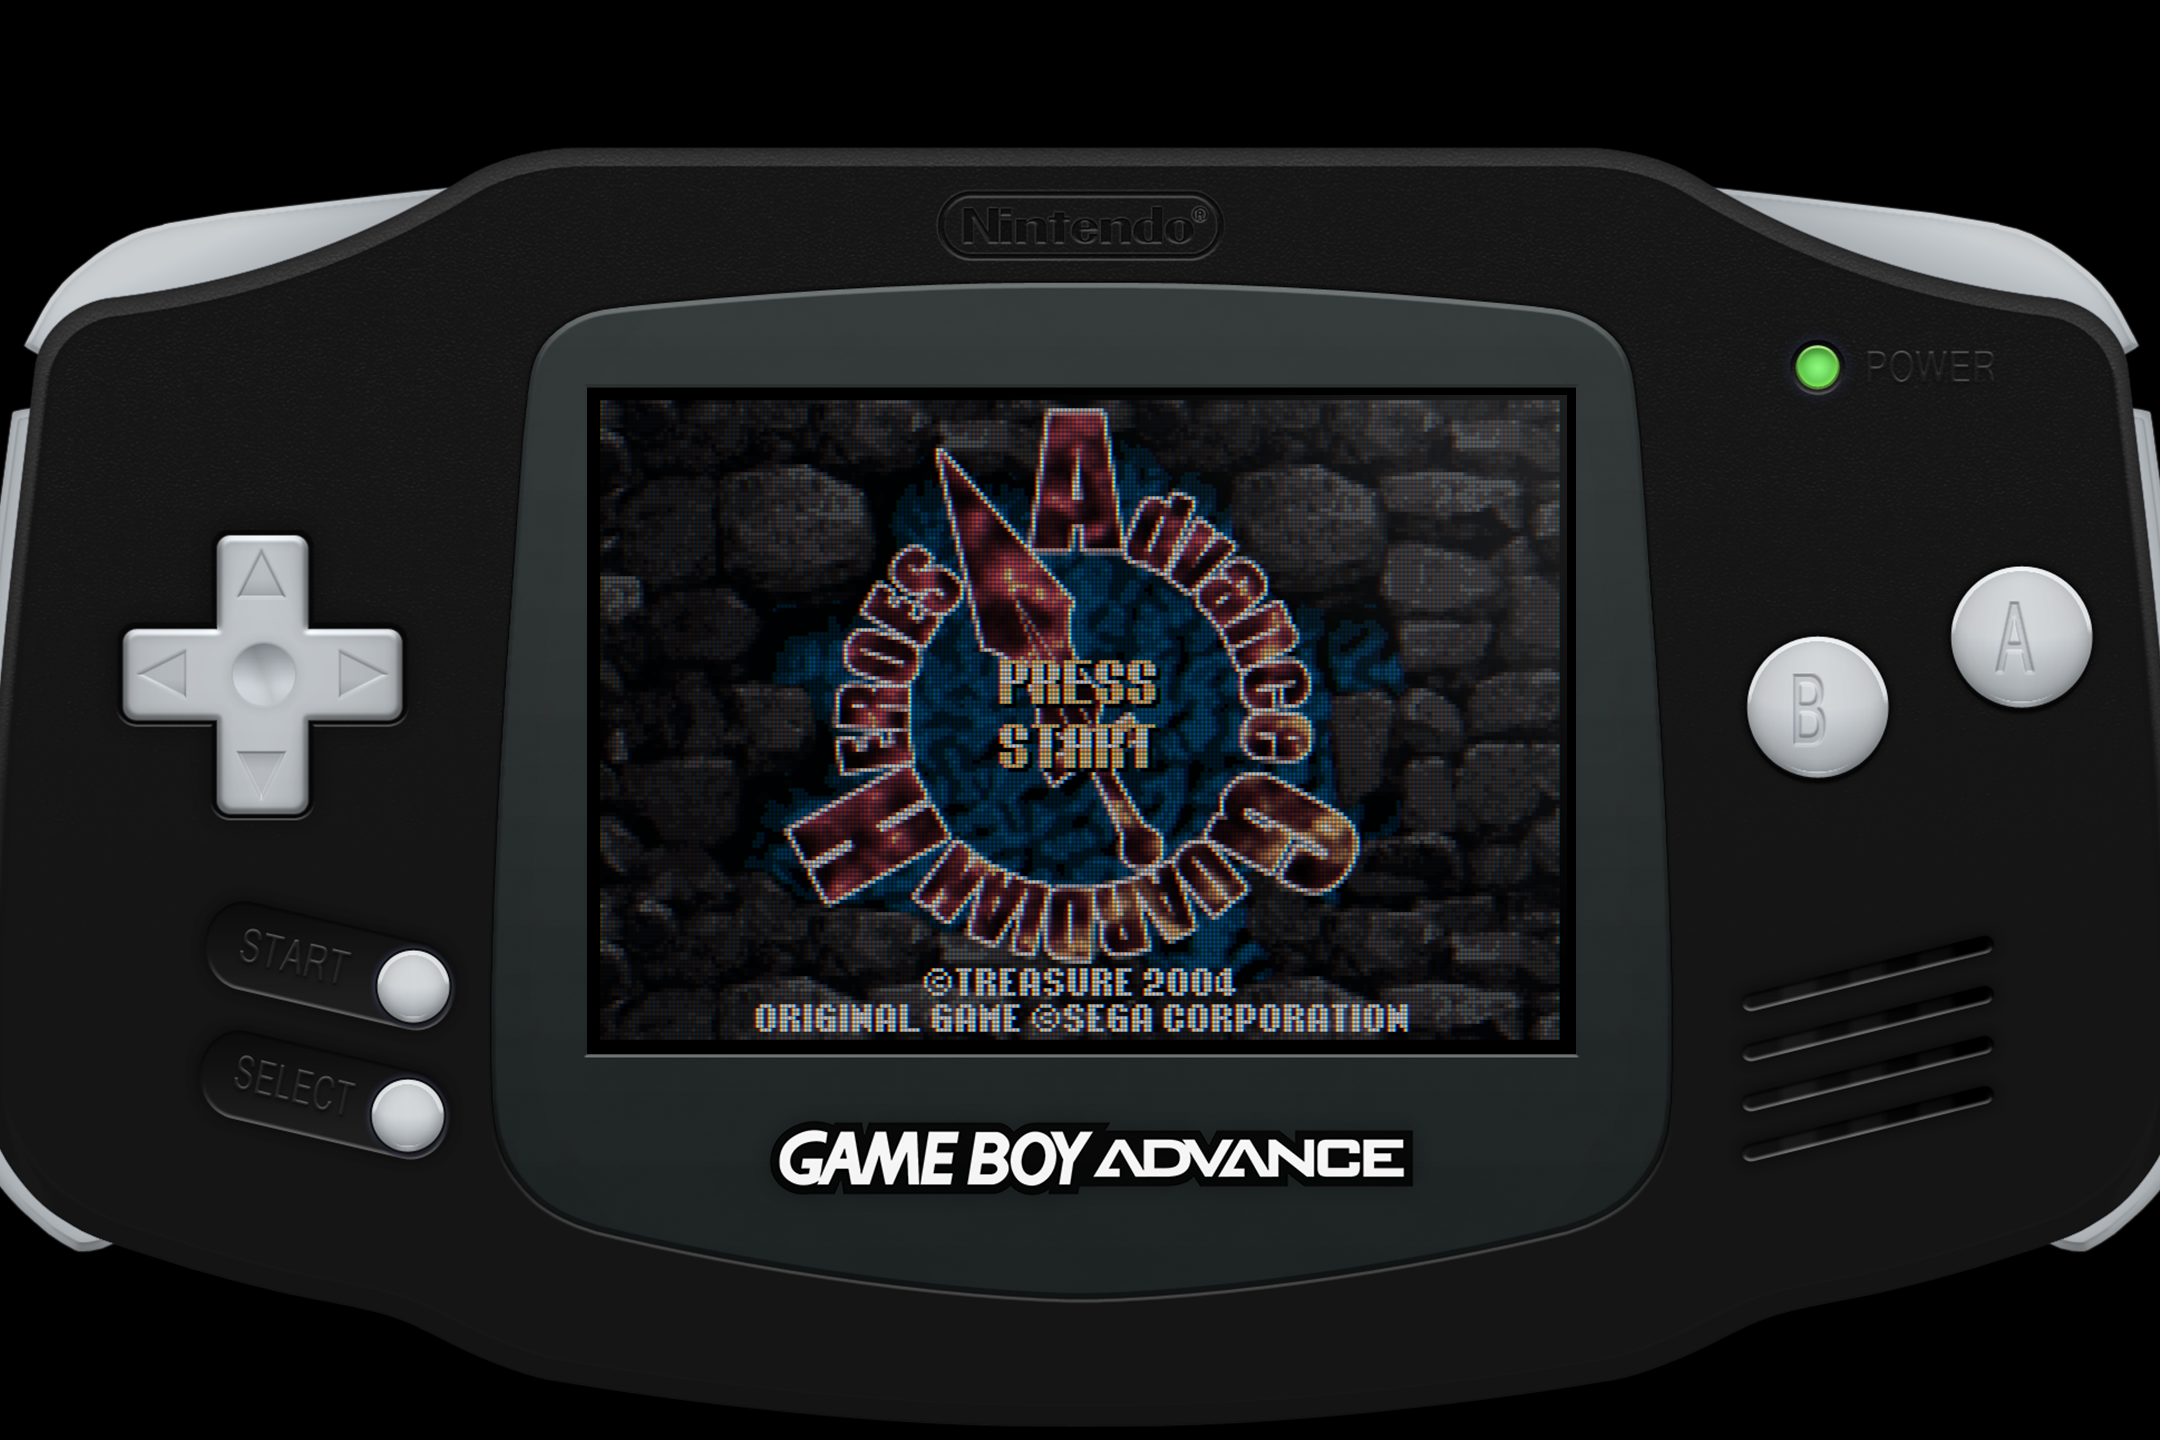 Gameboy Advance games not launching in RetroArch - Page 2